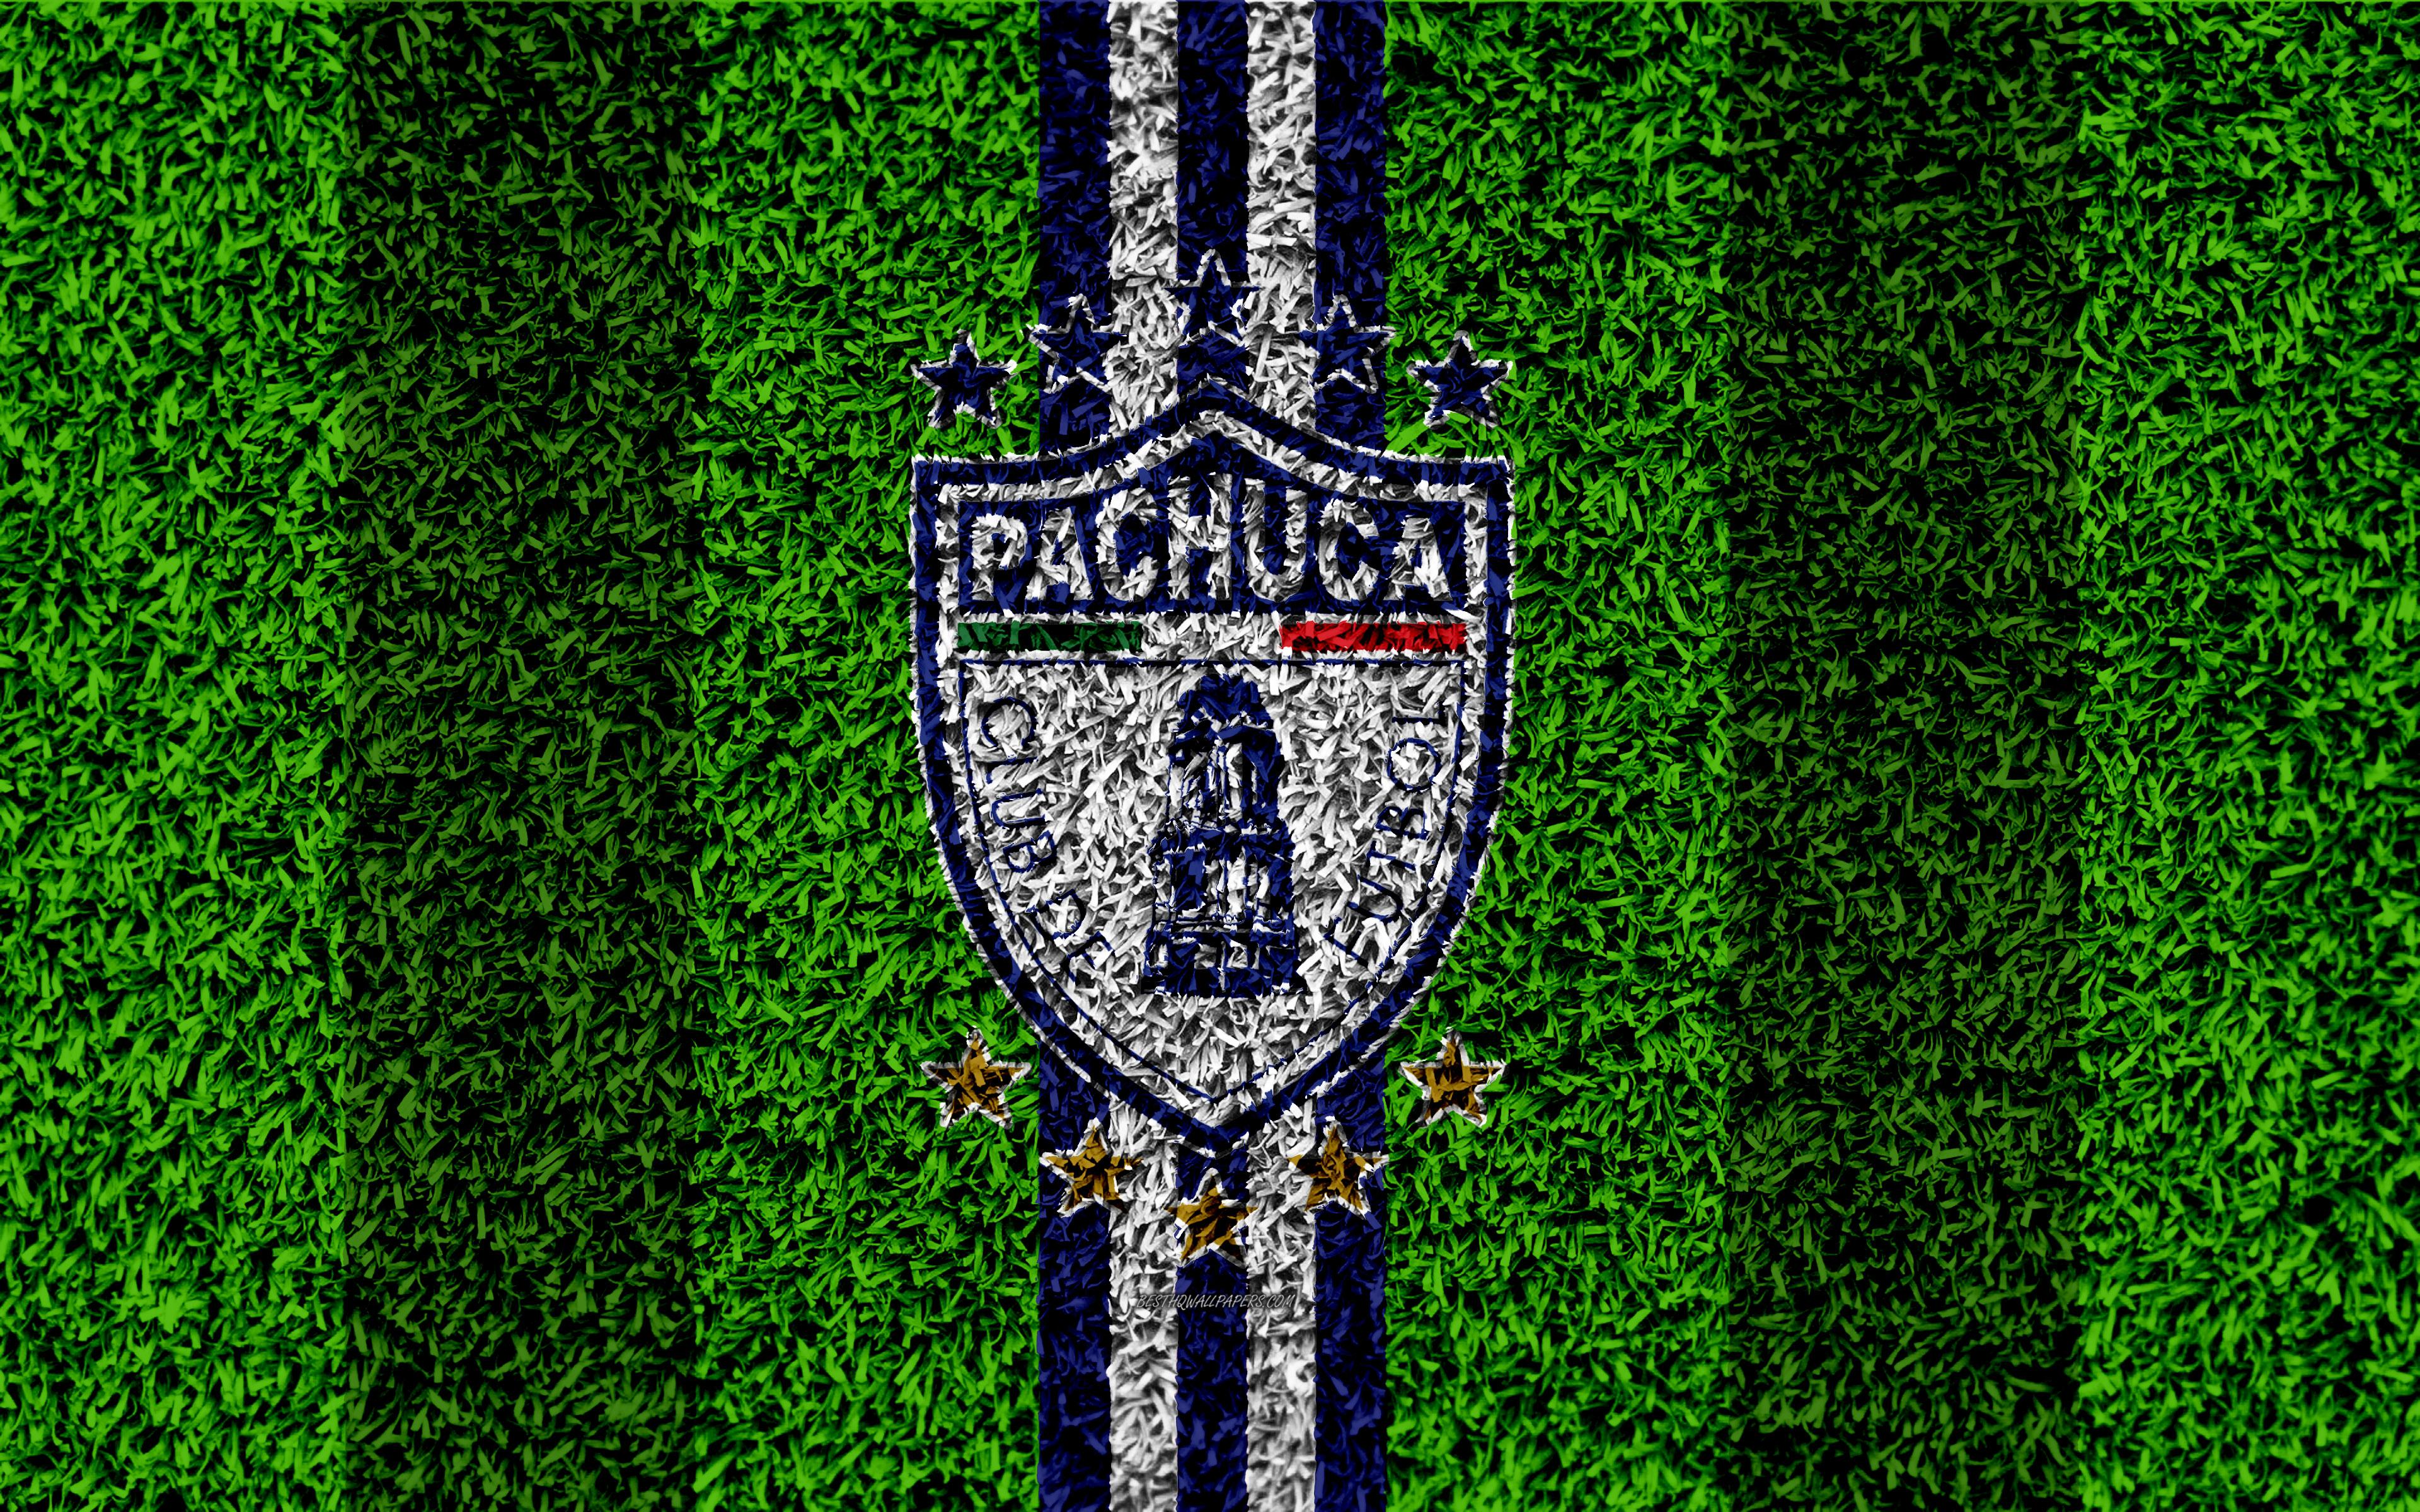 Download wallpapers CF Pachuca, 4k, football lawn, logo, Mexican